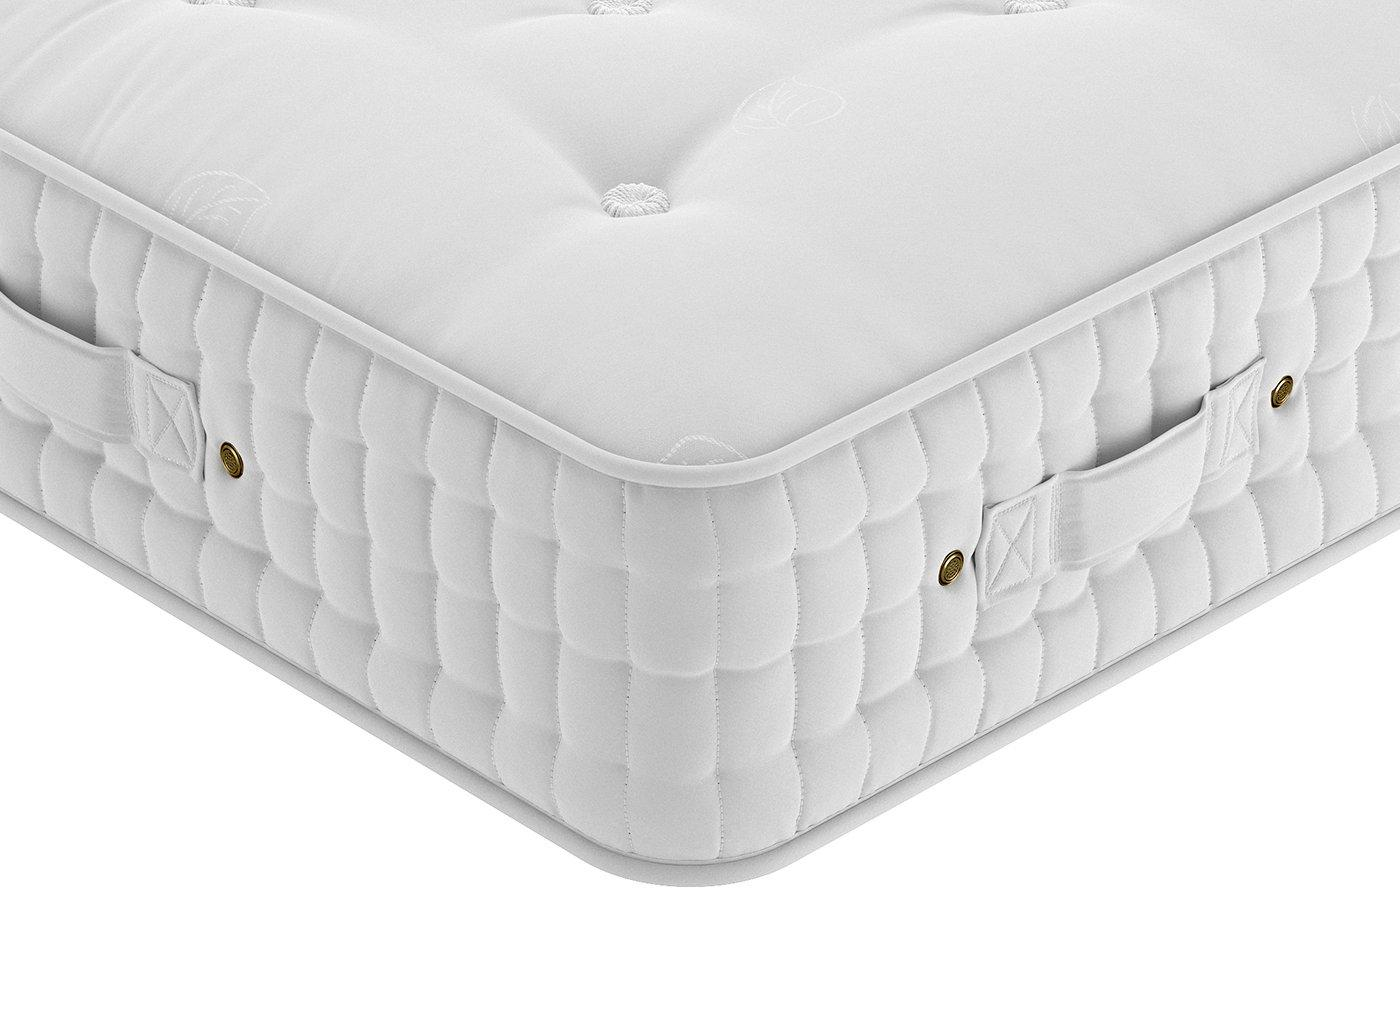 flaxby-nature-s-finest-11150-dnair-mattress